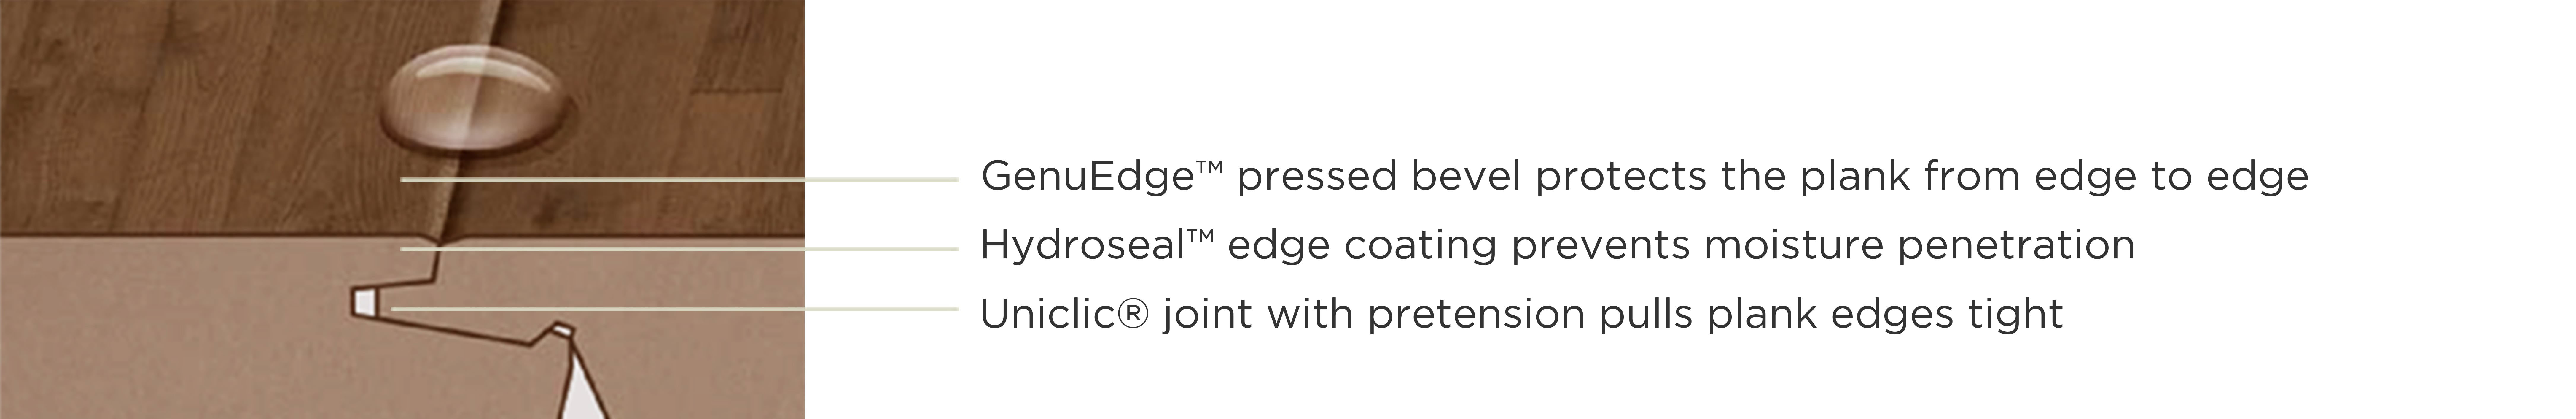 Daigram for Pergo TimberCraft features. GenuEdge™ pressed bevel protects the plank from edge to edge, Hydroseal™ edge coating prevents moisture penetration, Uniclic® joint with pretension pulls plank edges tight